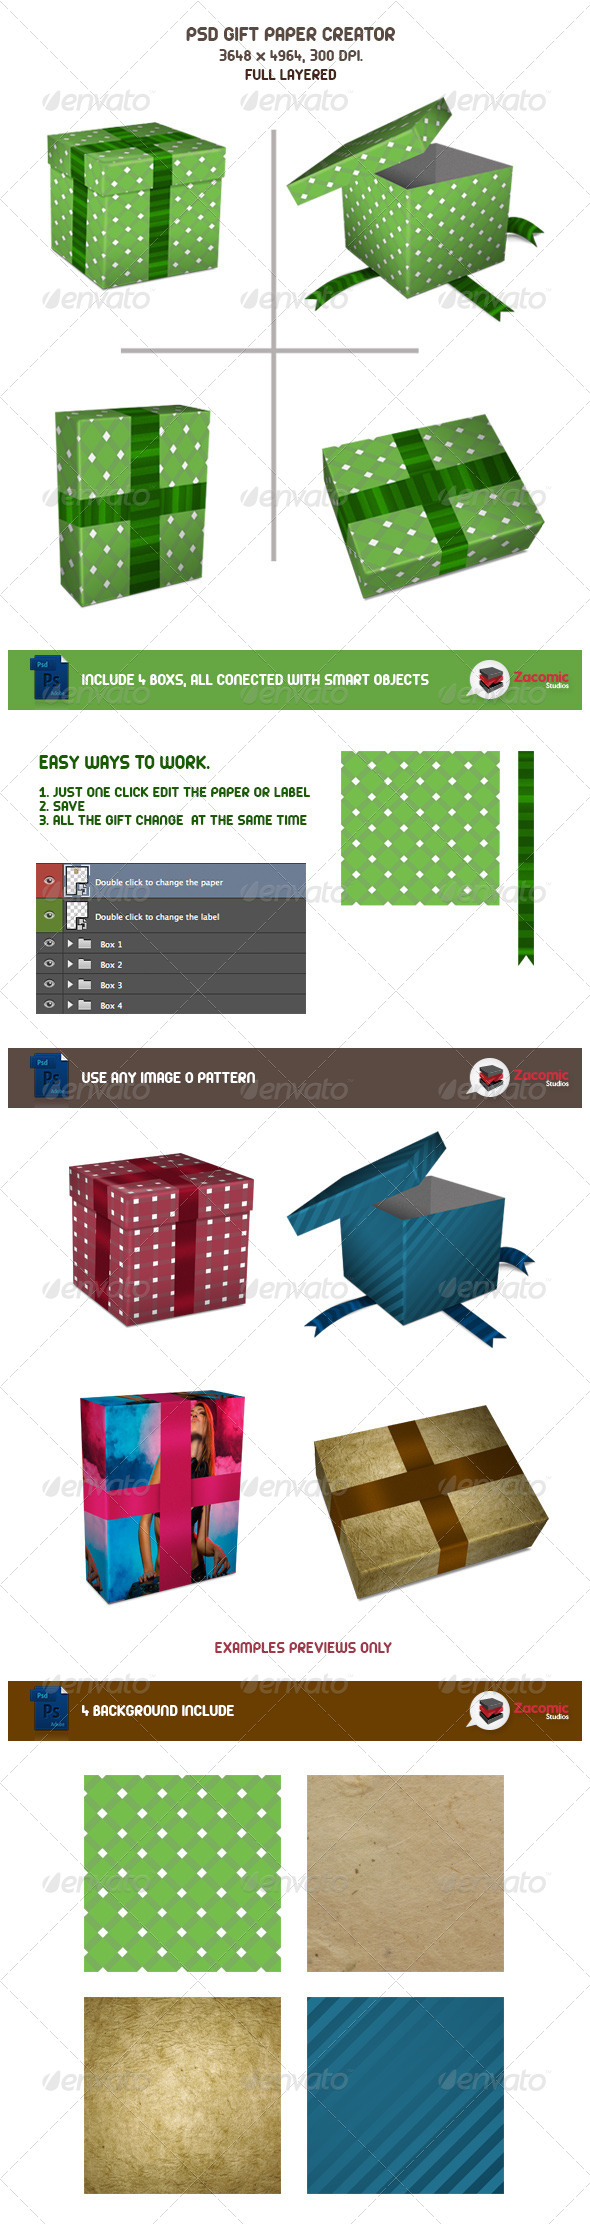 Gift Paper Creator - Product Mock-Ups Graphics